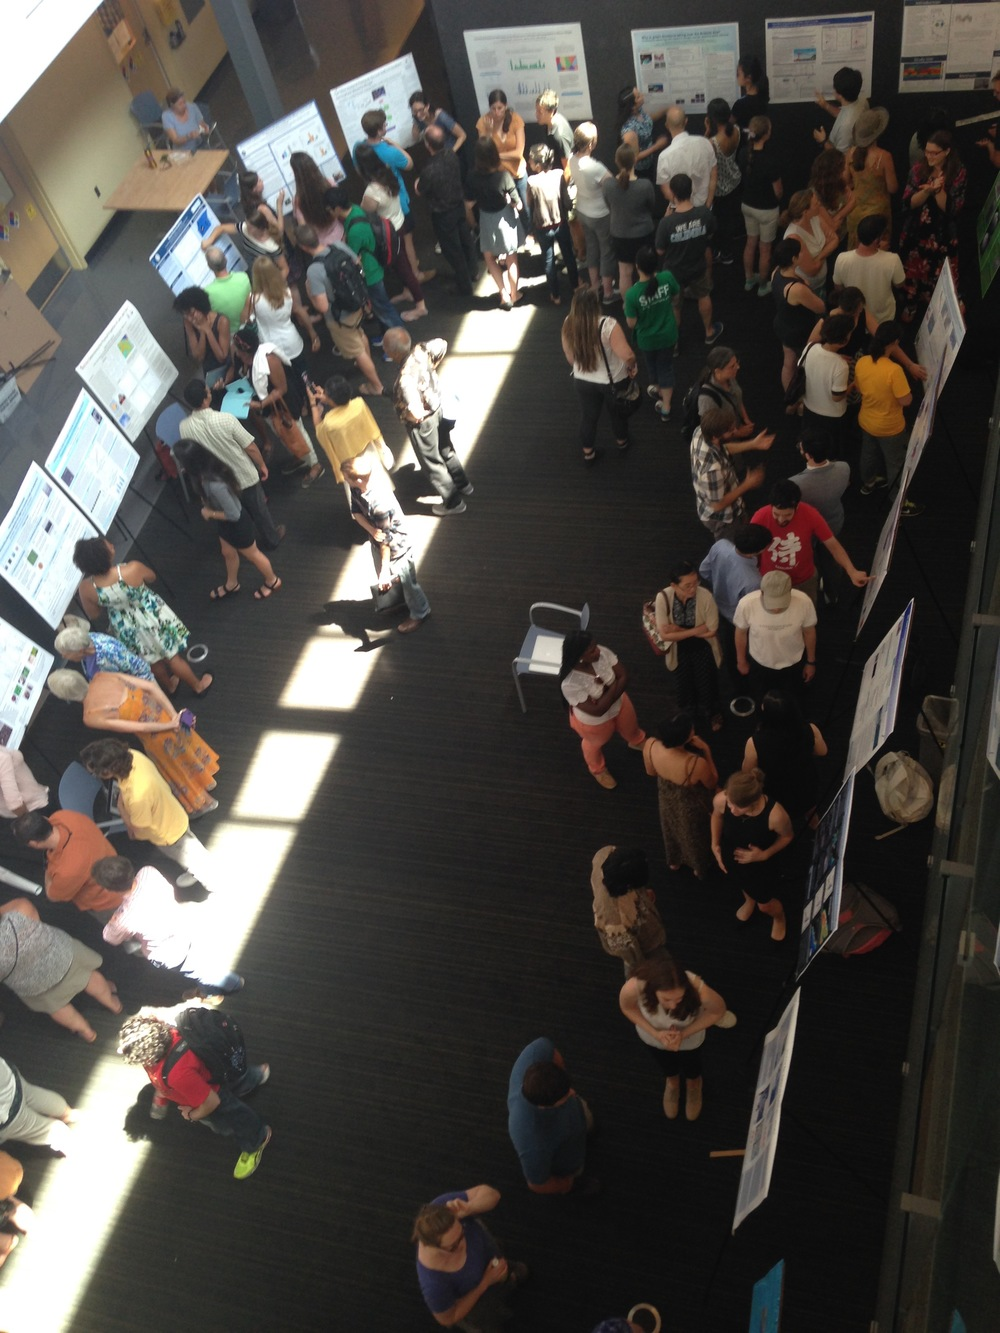 Intern poster session in Comer